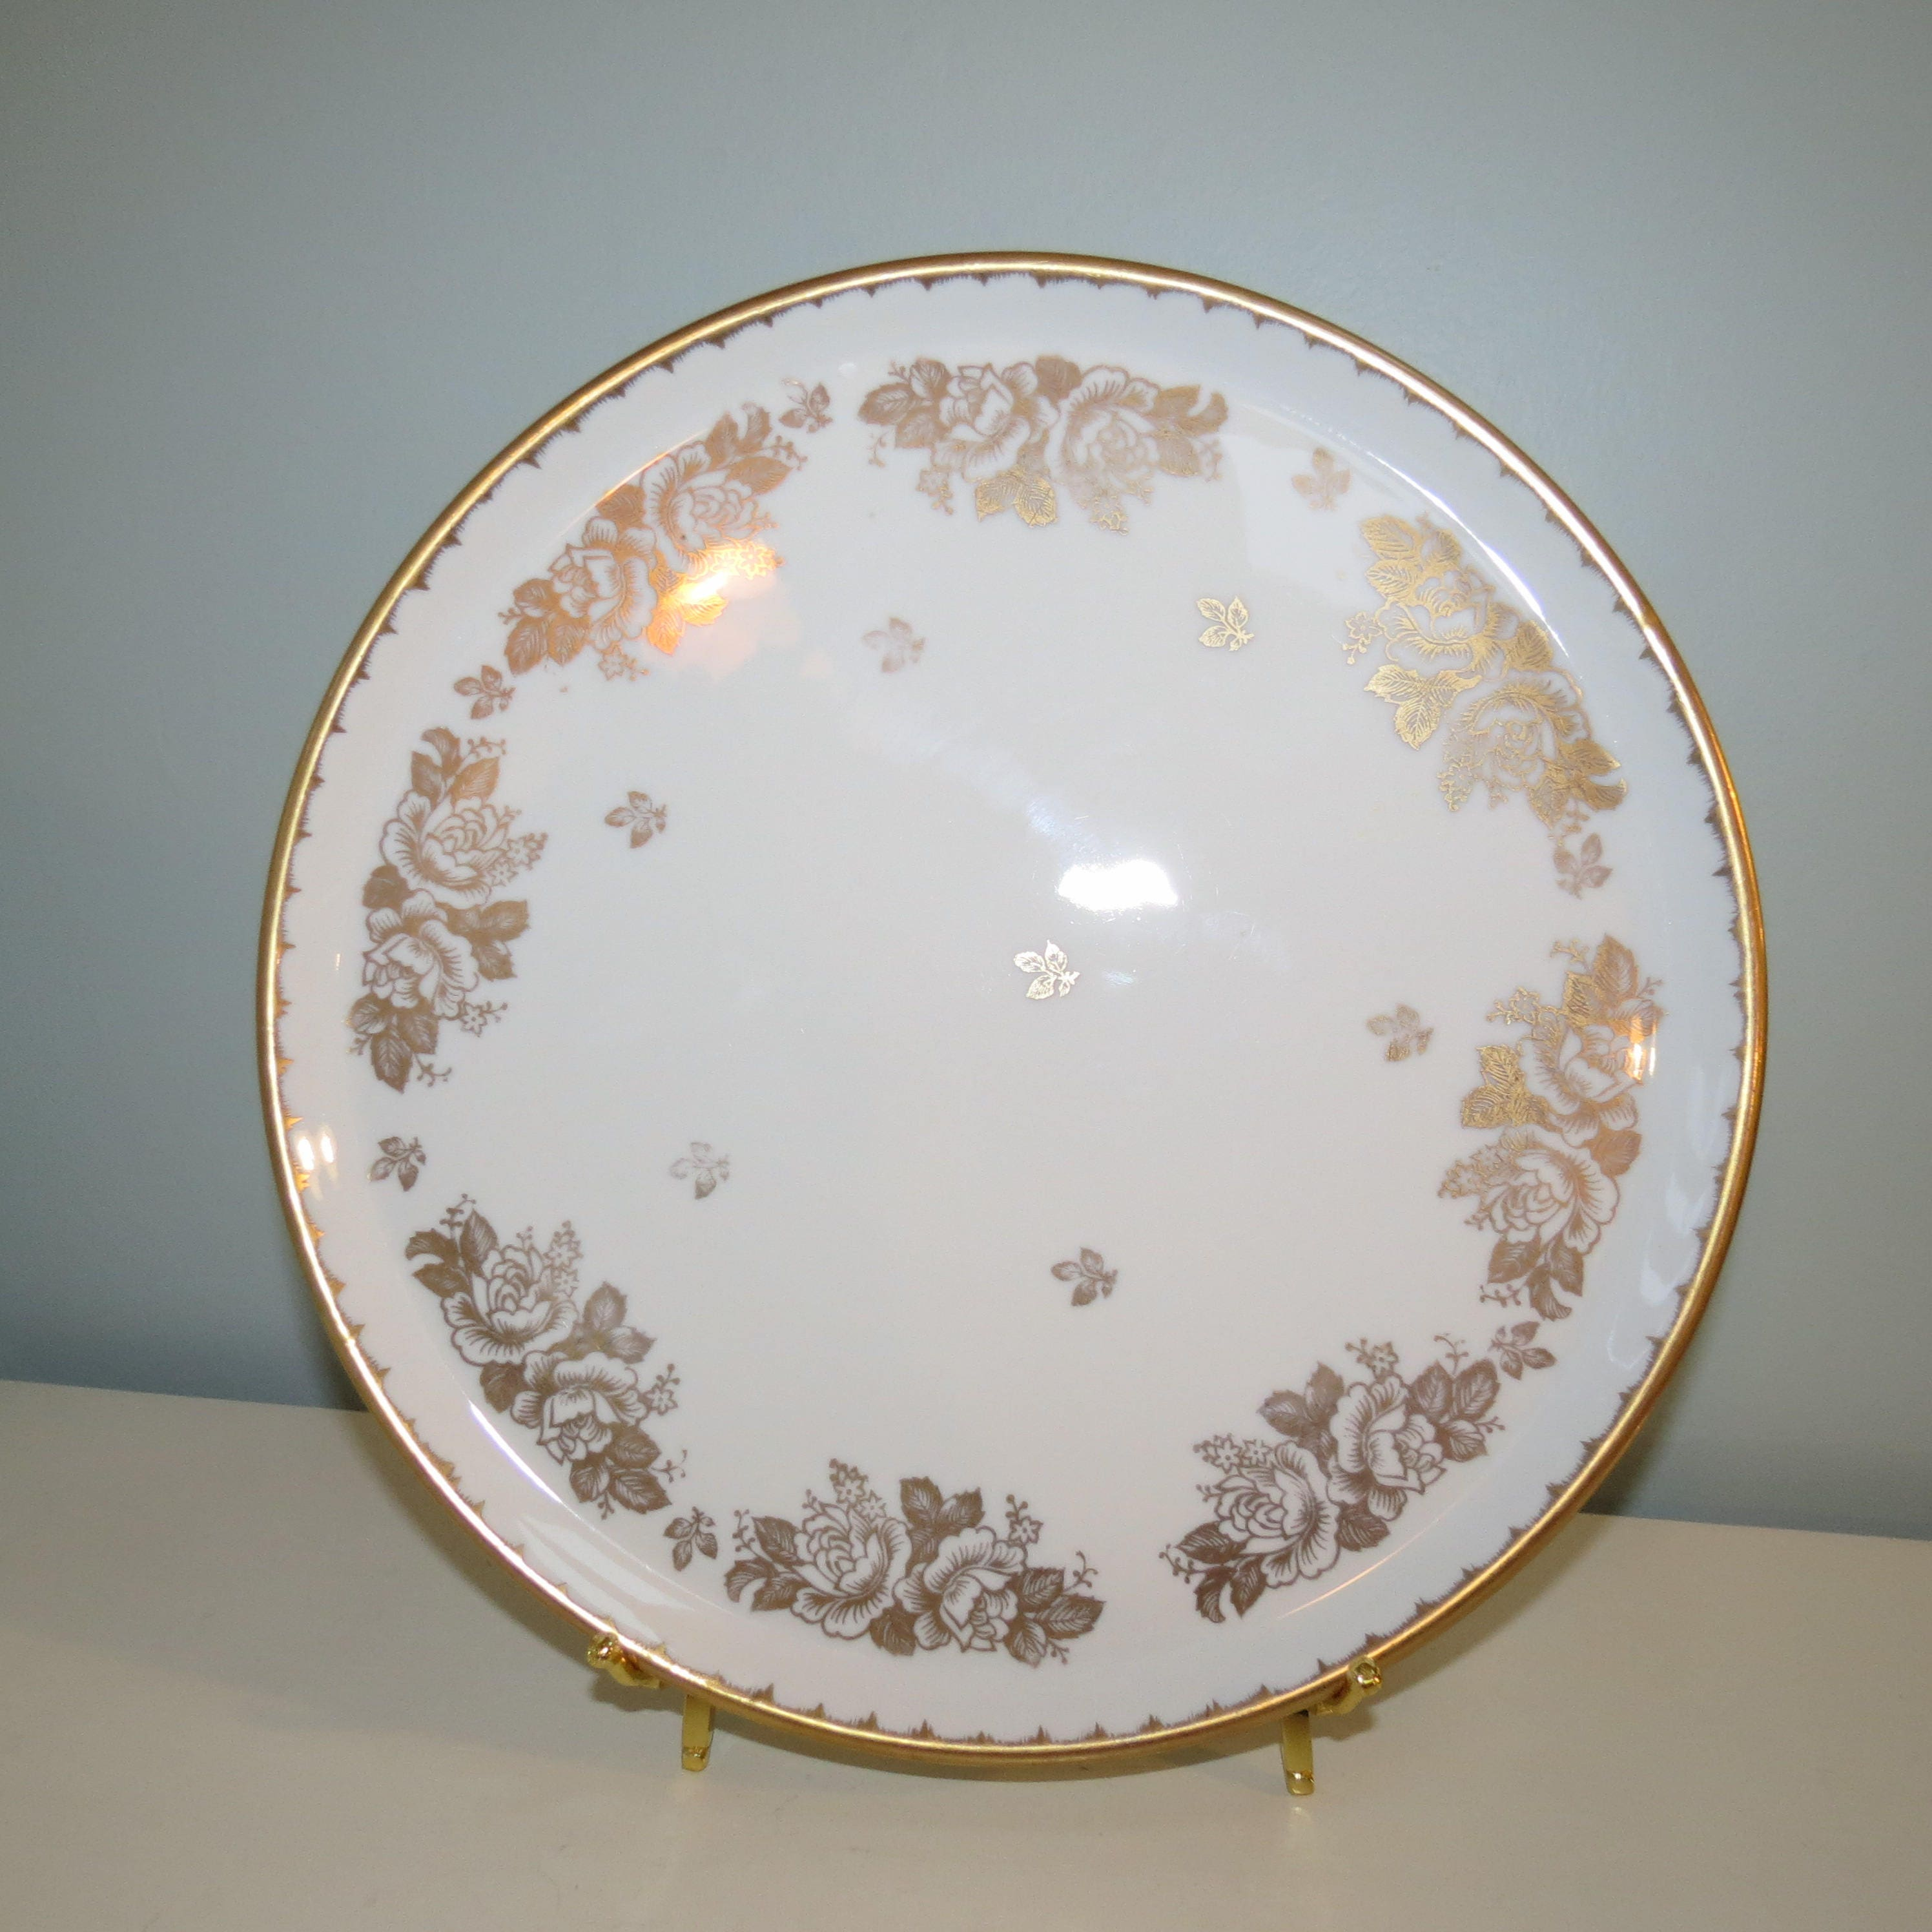 Antique Revol Porcelain China Plate